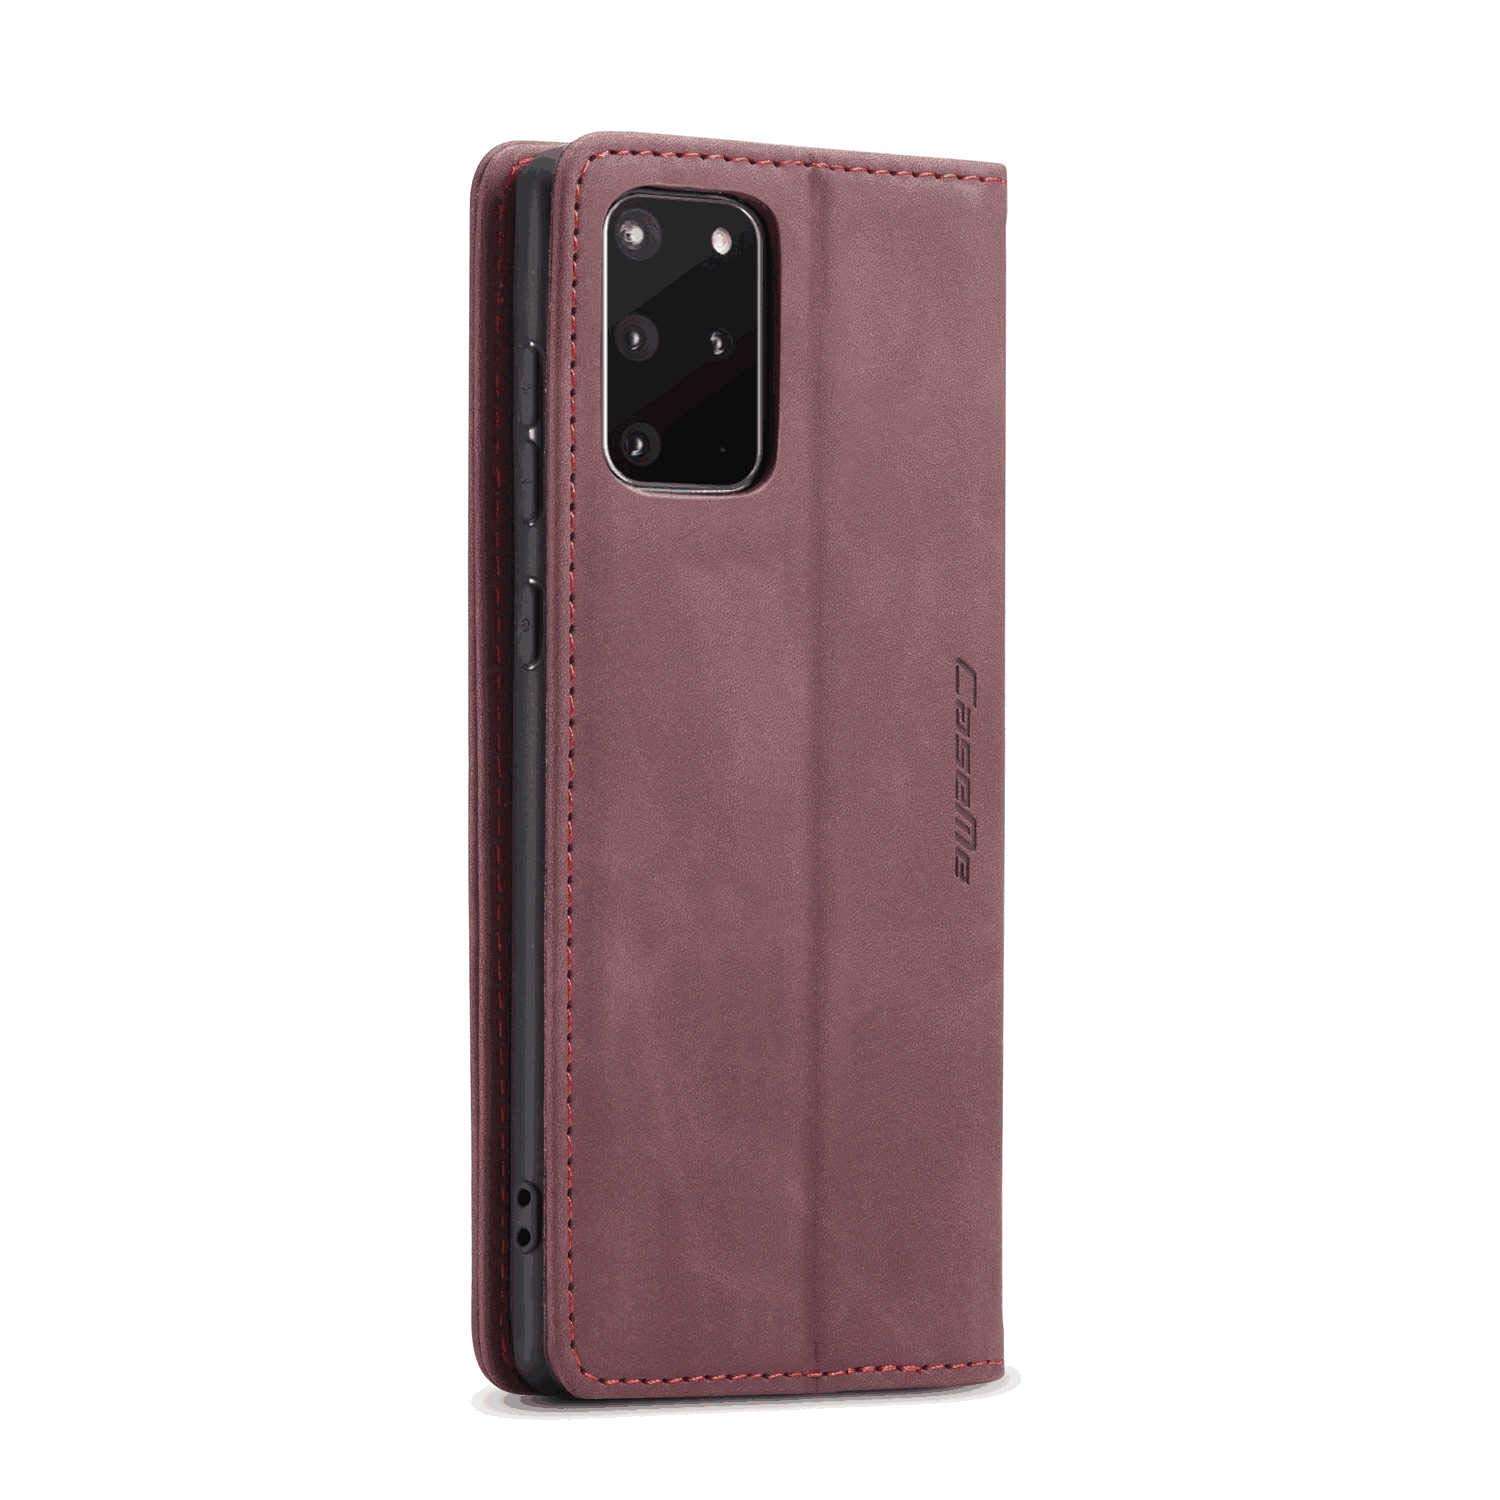 Soft Coffee Wallet Cover for Samsung Galaxy A70 Leather Flip Case Fit for Samsung Galaxy A70